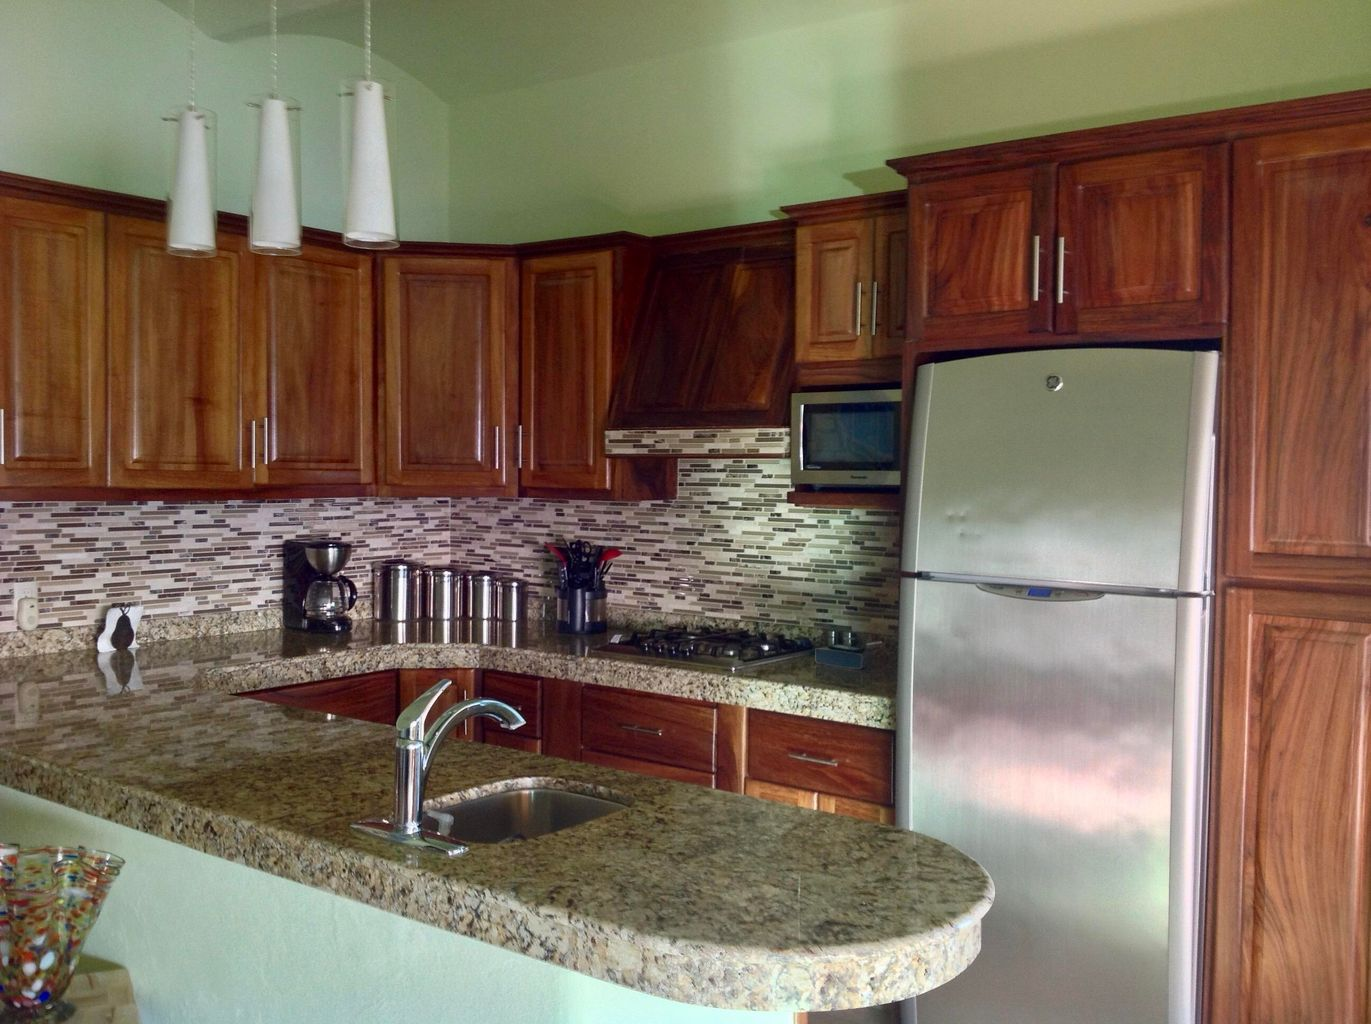 Modern kitchen includes granite counter tops, stainless steel appliances, beautiful parota cabinetry with lots of storage